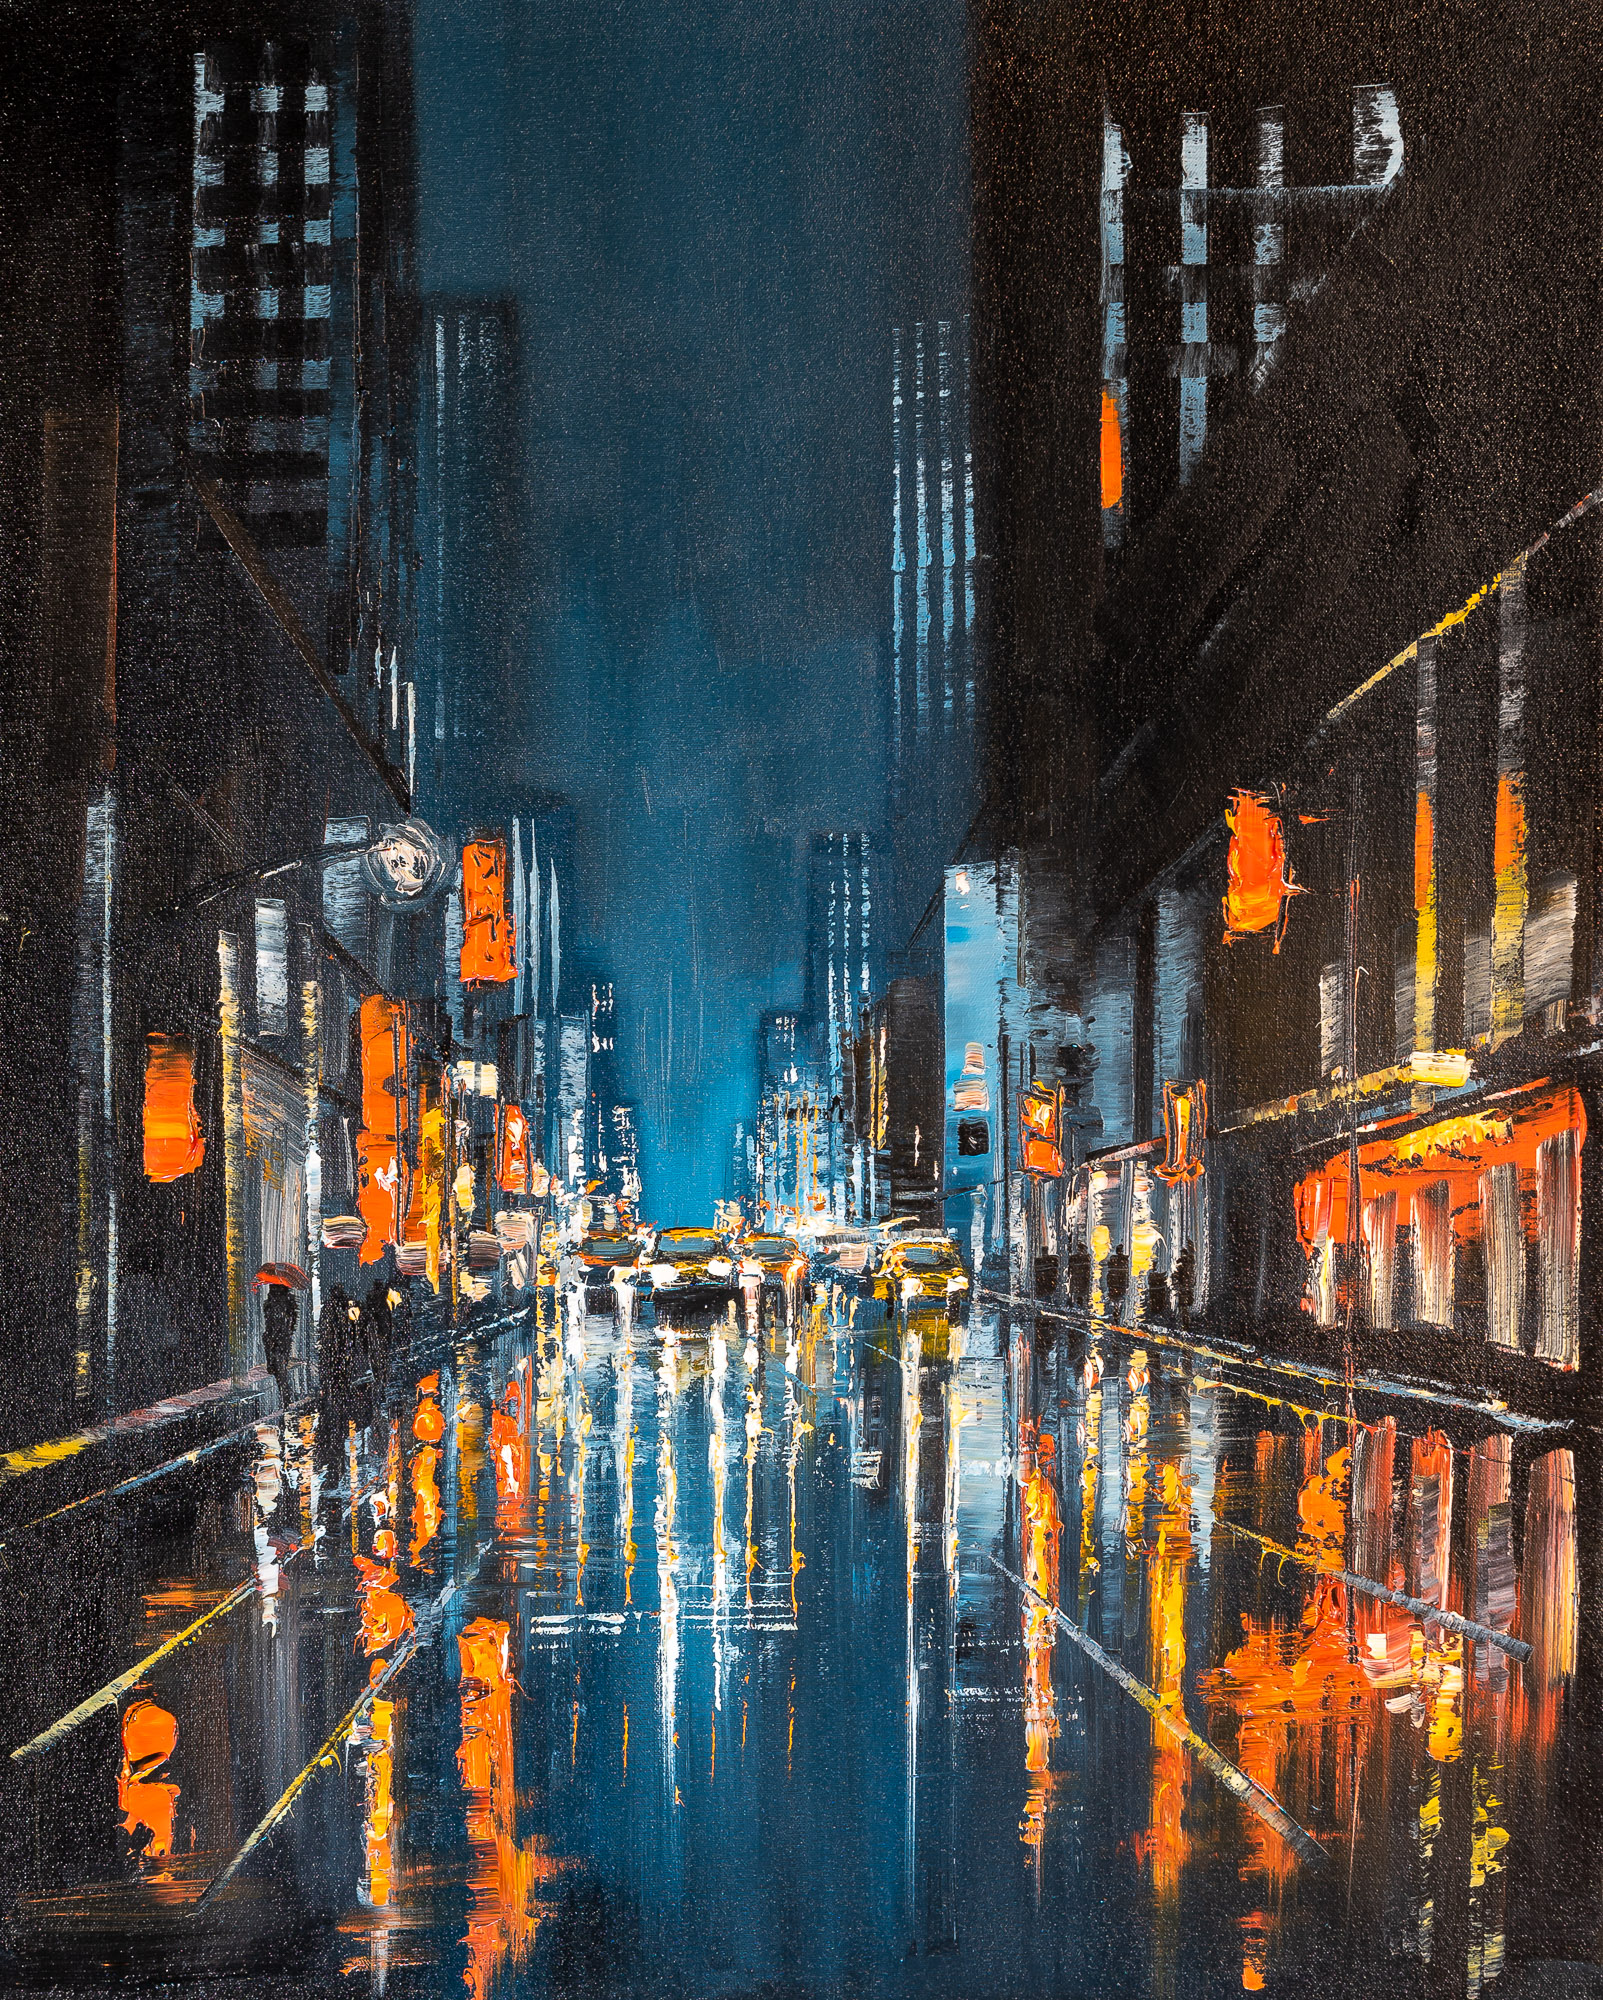 Light Up The Dark by Paul Kenton, UK contemporary cityscape artist, an original painting from his New York Collection